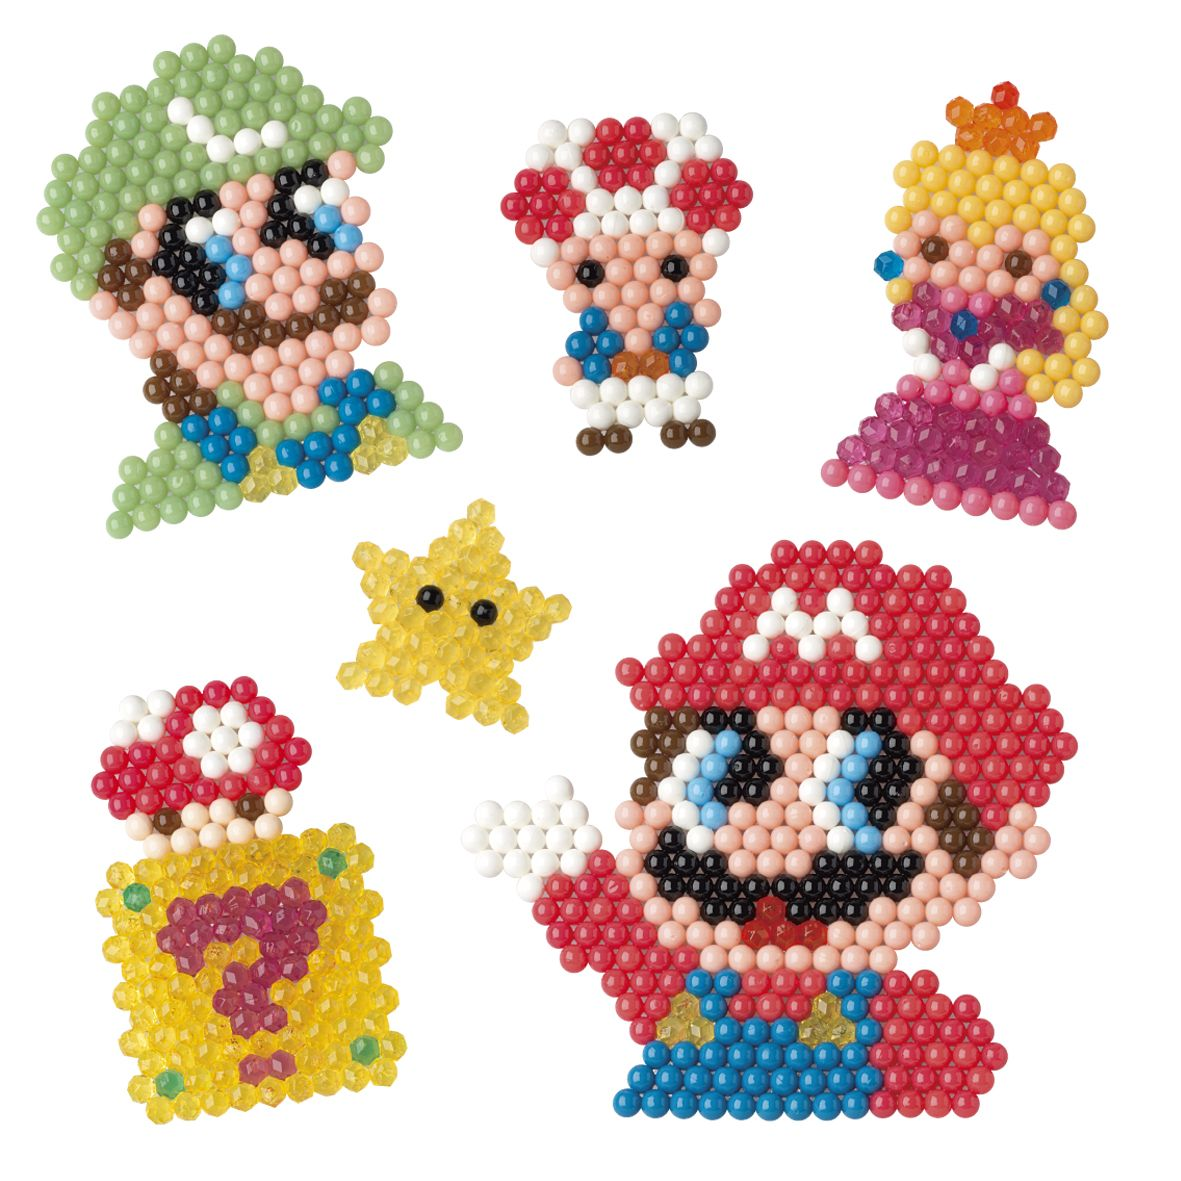 aquabeads super mario playset artsandcrafts parents kids thingstodo aquabeads pinterest. Black Bedroom Furniture Sets. Home Design Ideas